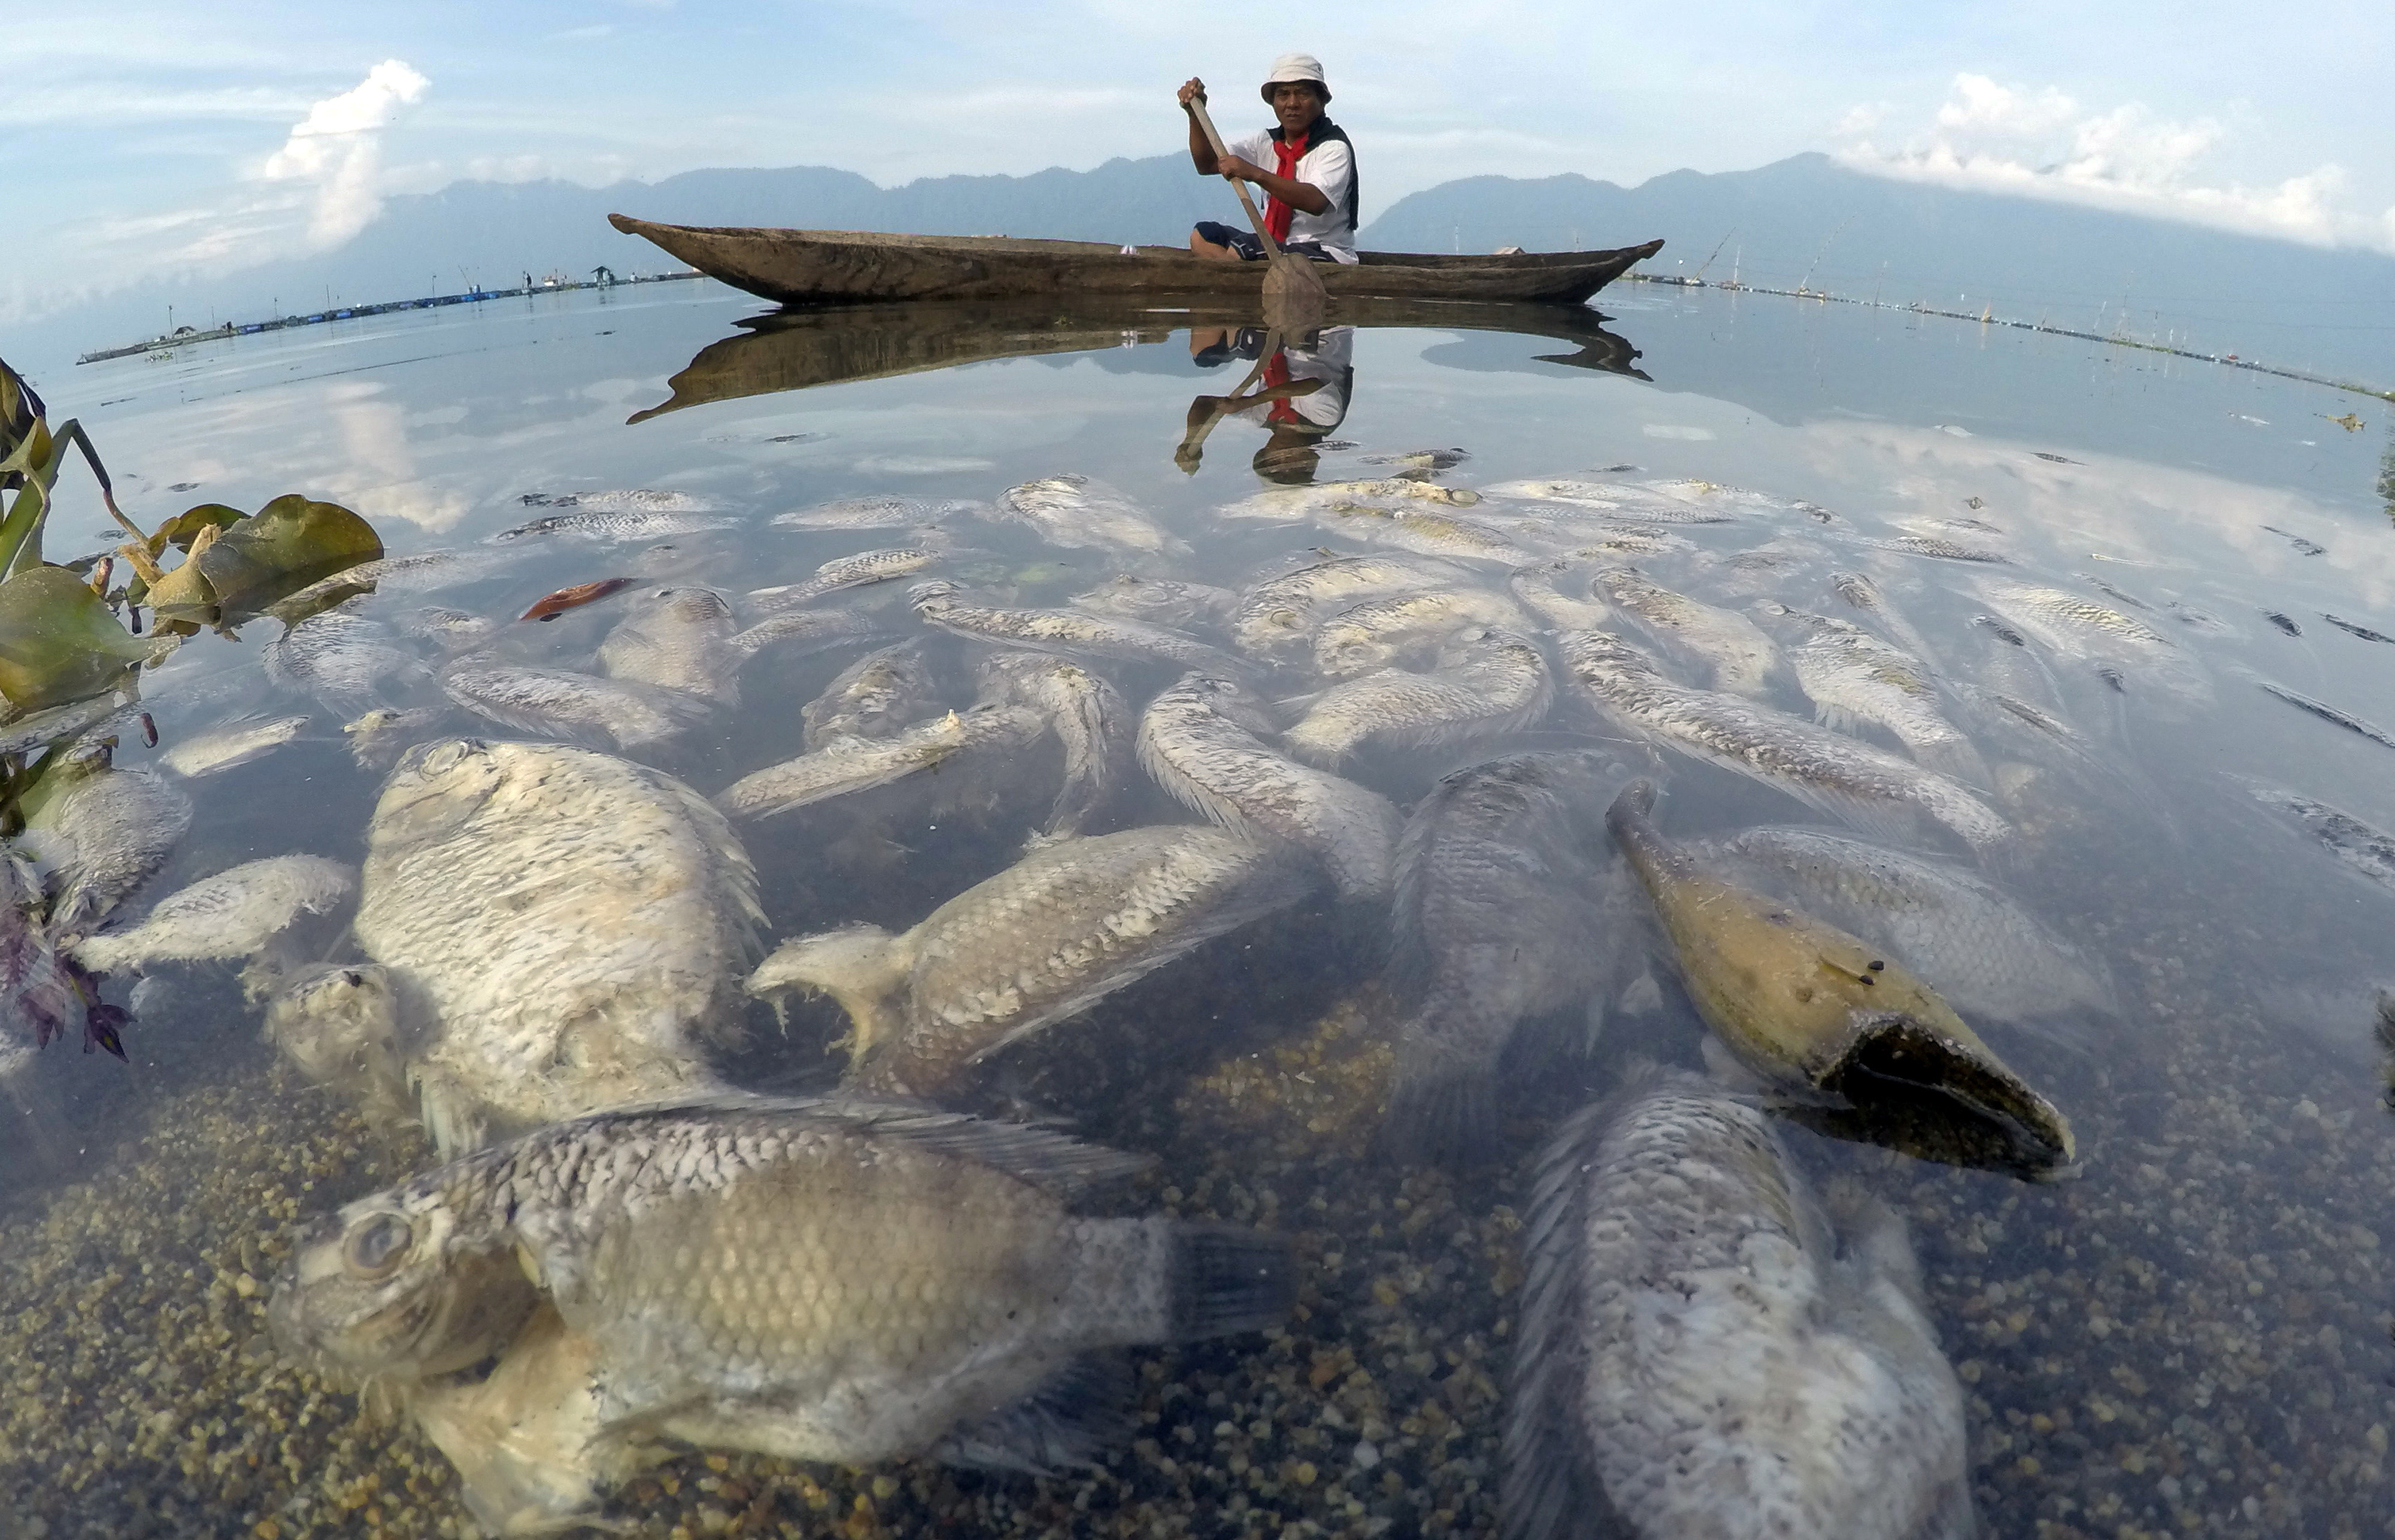 A fisherman paddles a wooden boat as dead fish are seen at Maninjau lake in Agam regency,